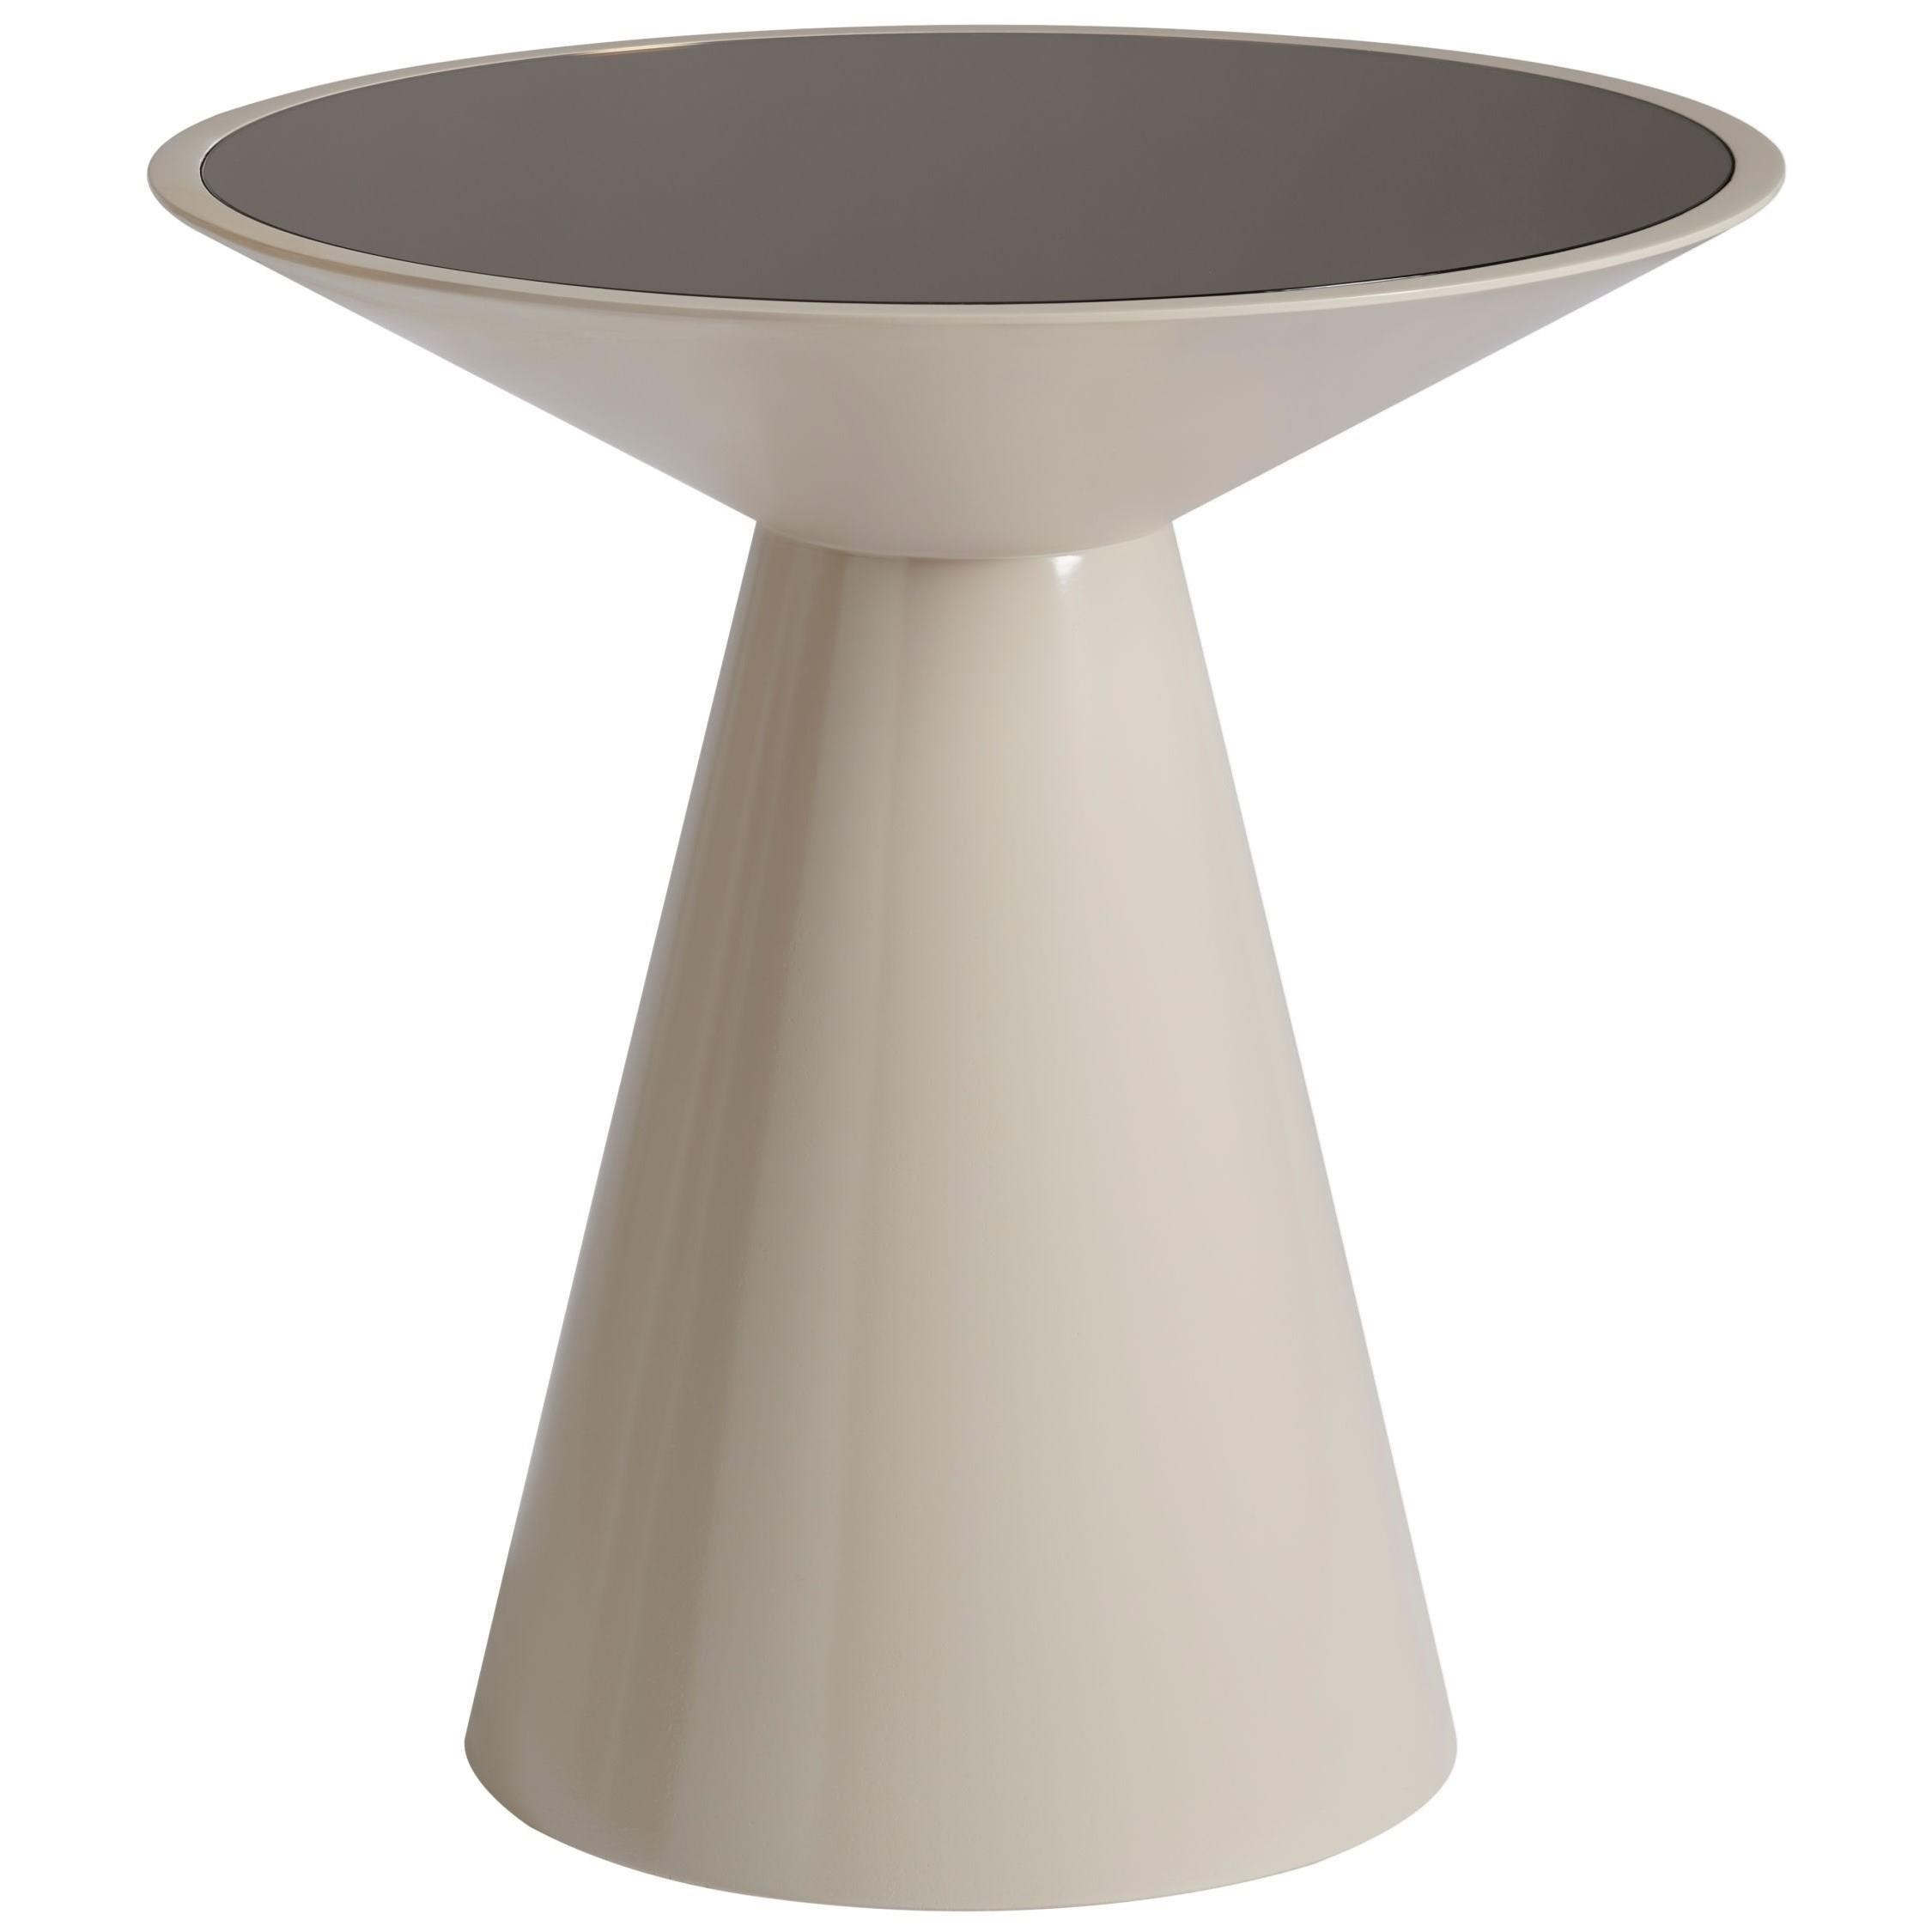 Nina Magon 941 Roni Round Accent Table by Universal at Baer's Furniture